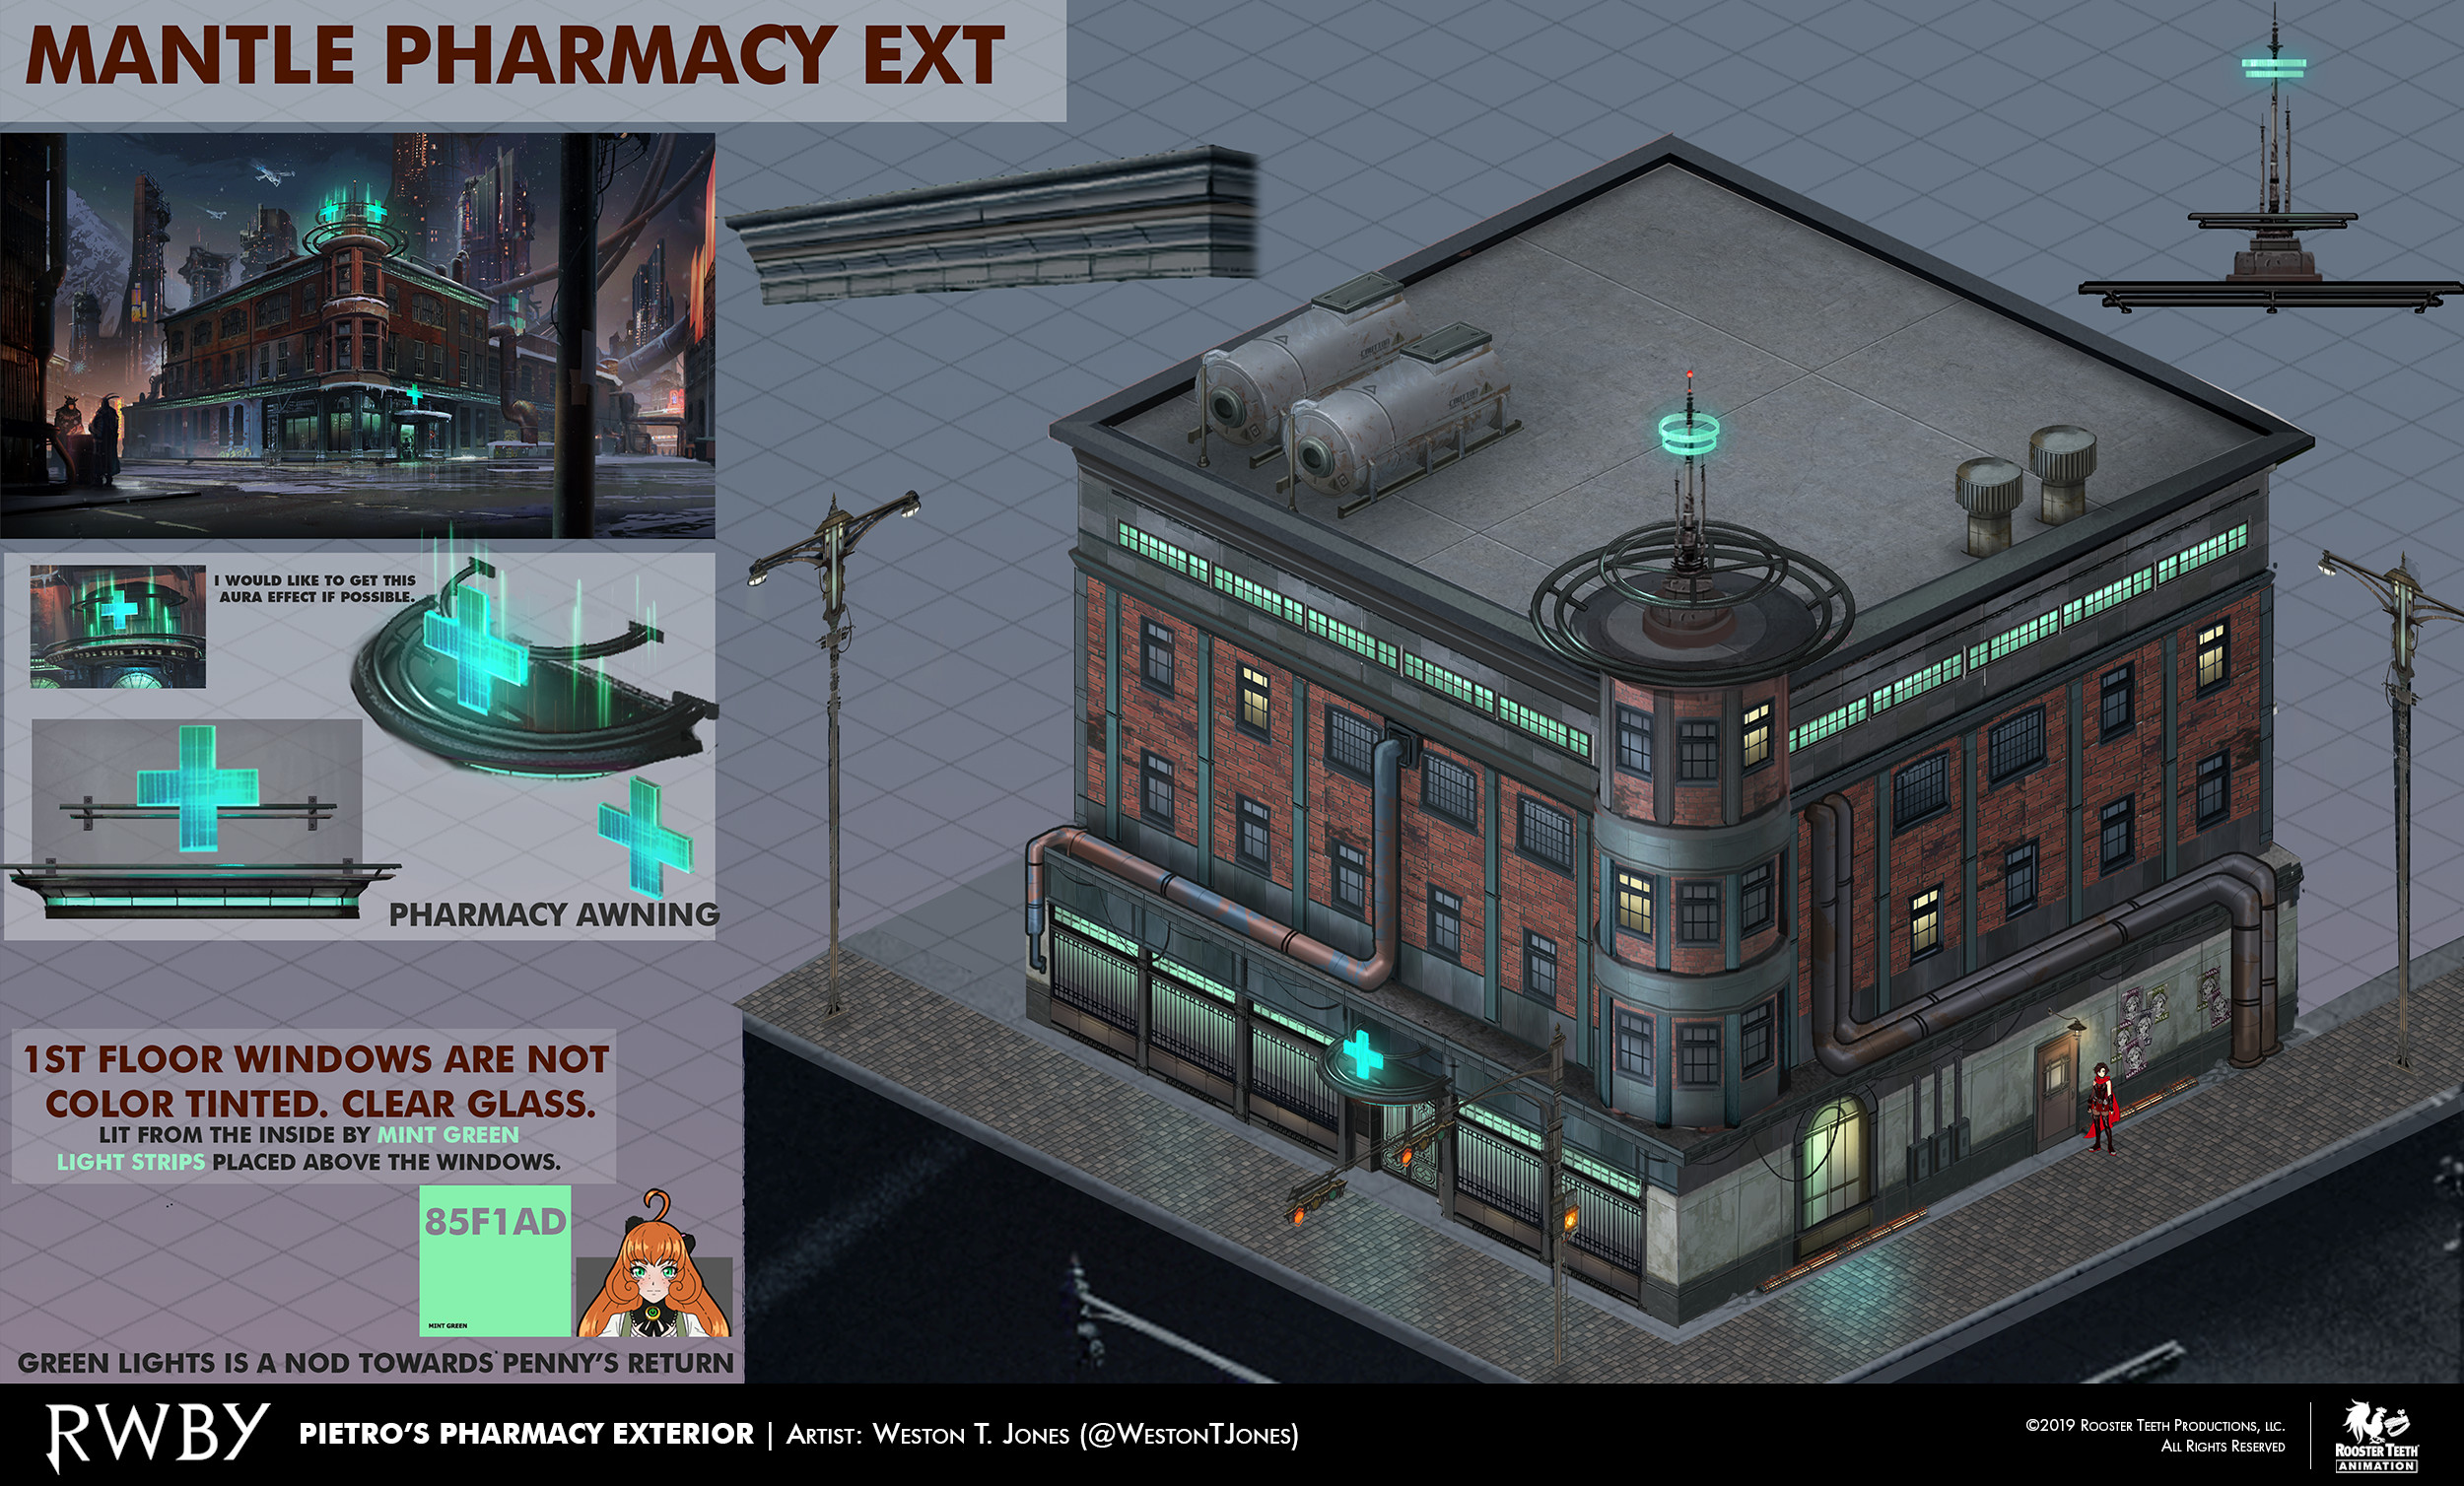 Pietro's Pharmacy from Chapter One. This was used as a template for how to assemble a Mantle building.